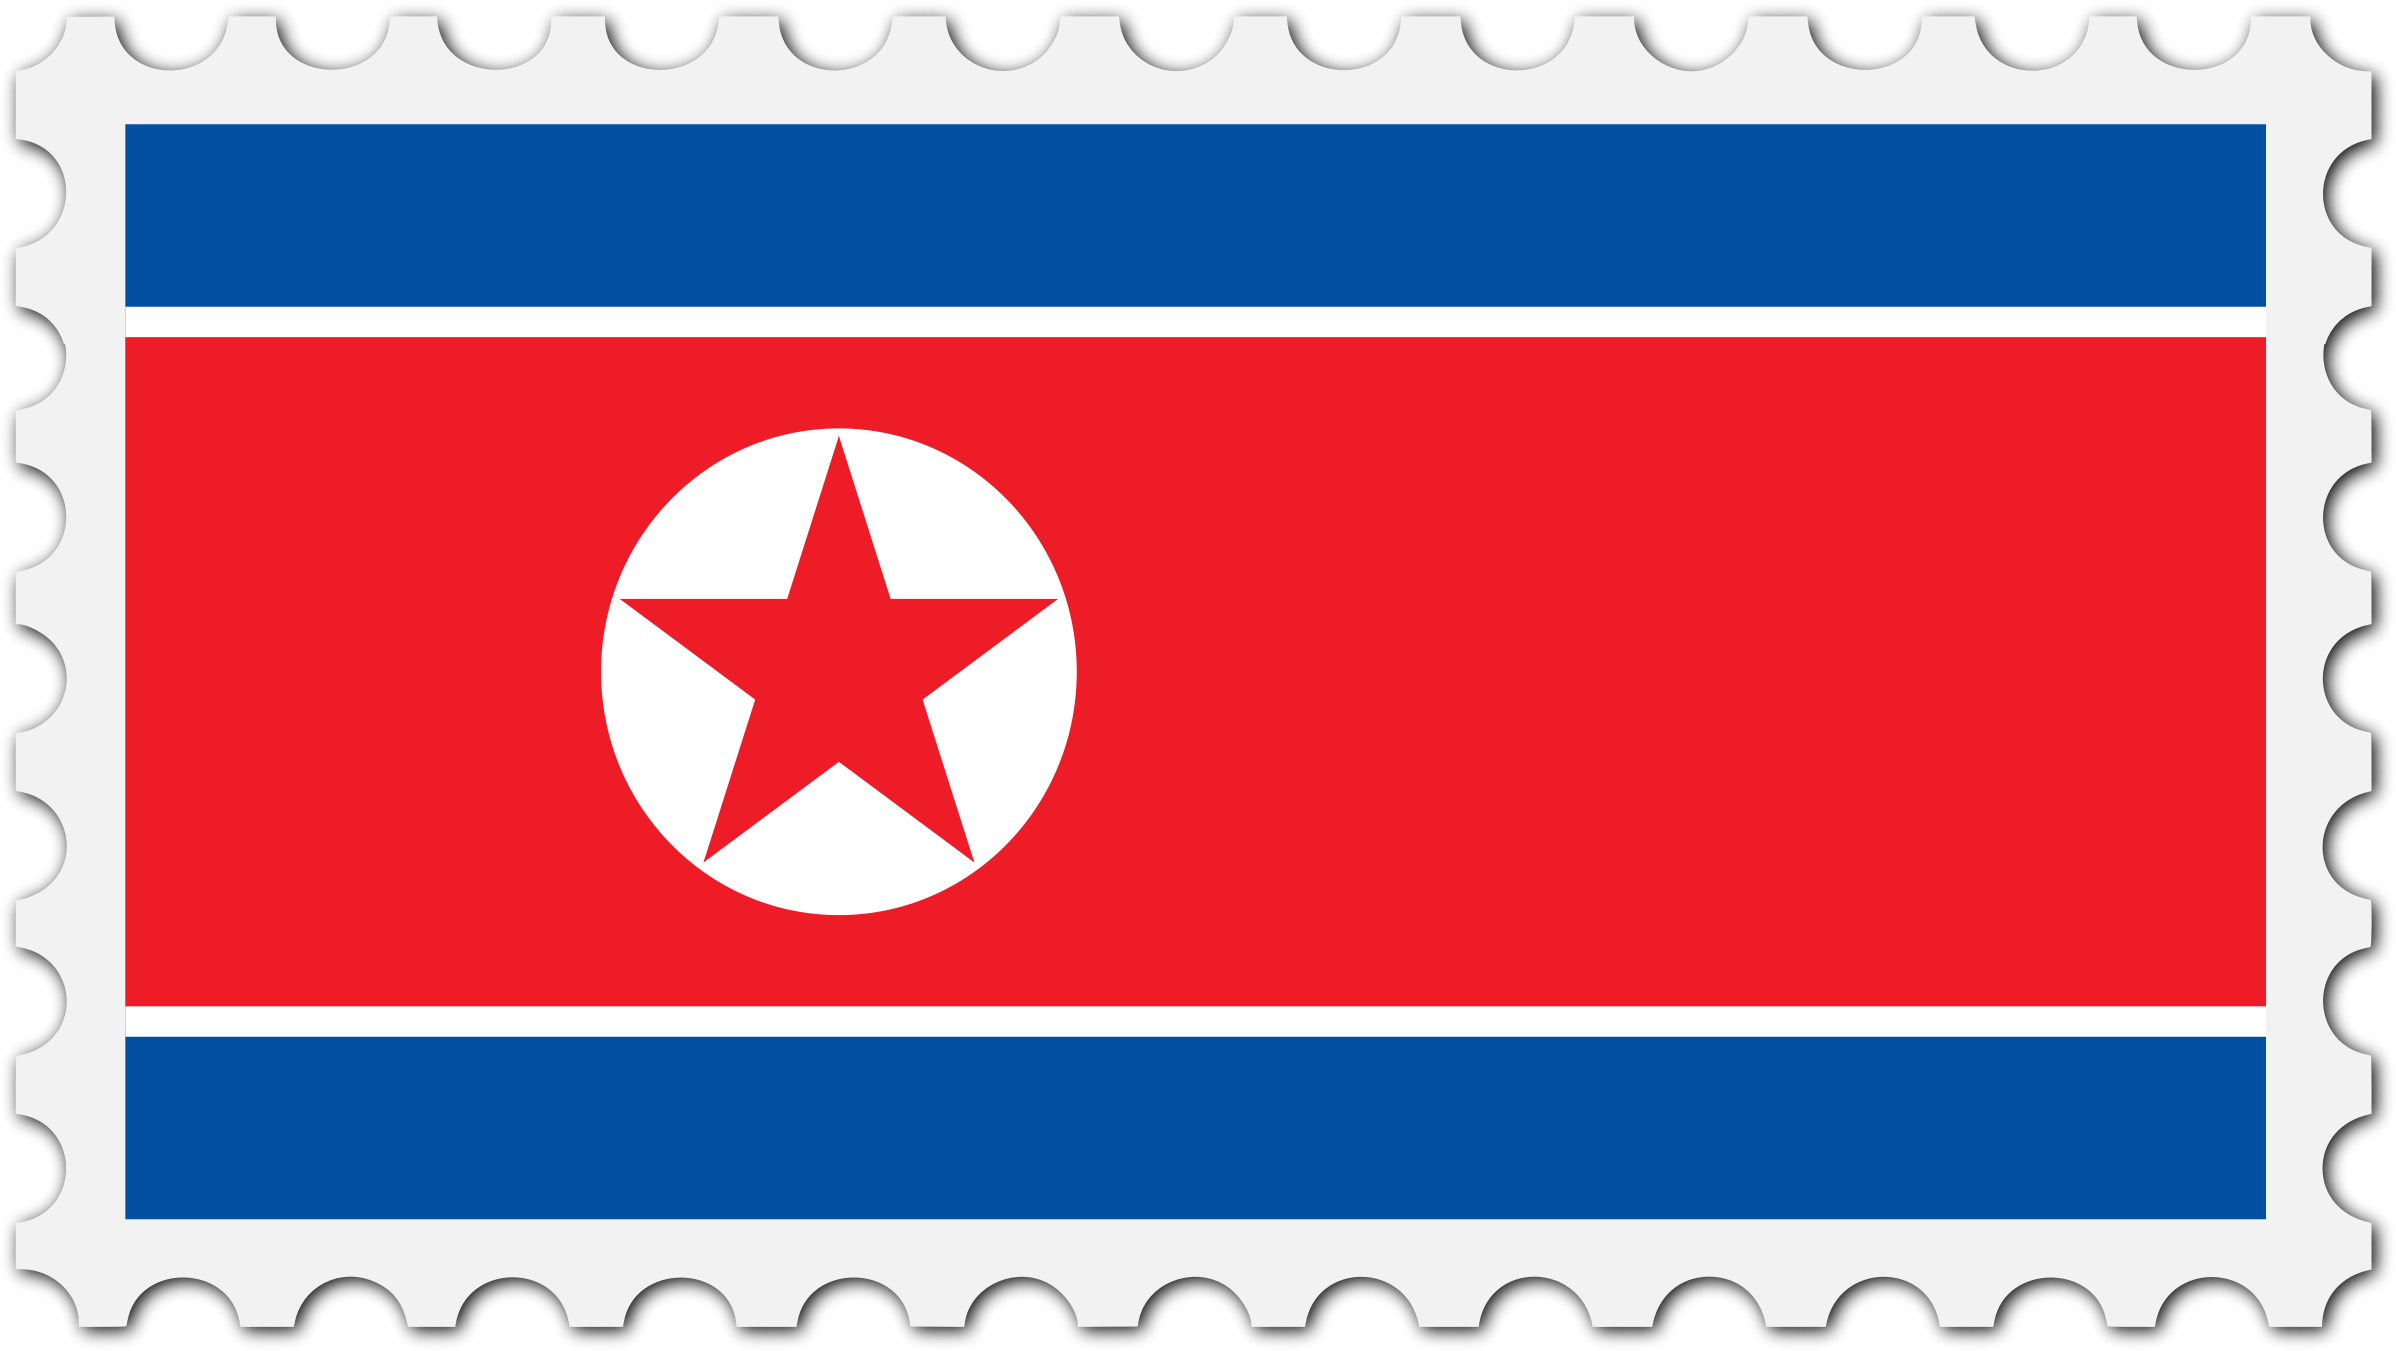 North Korea flag stamp by Firkin